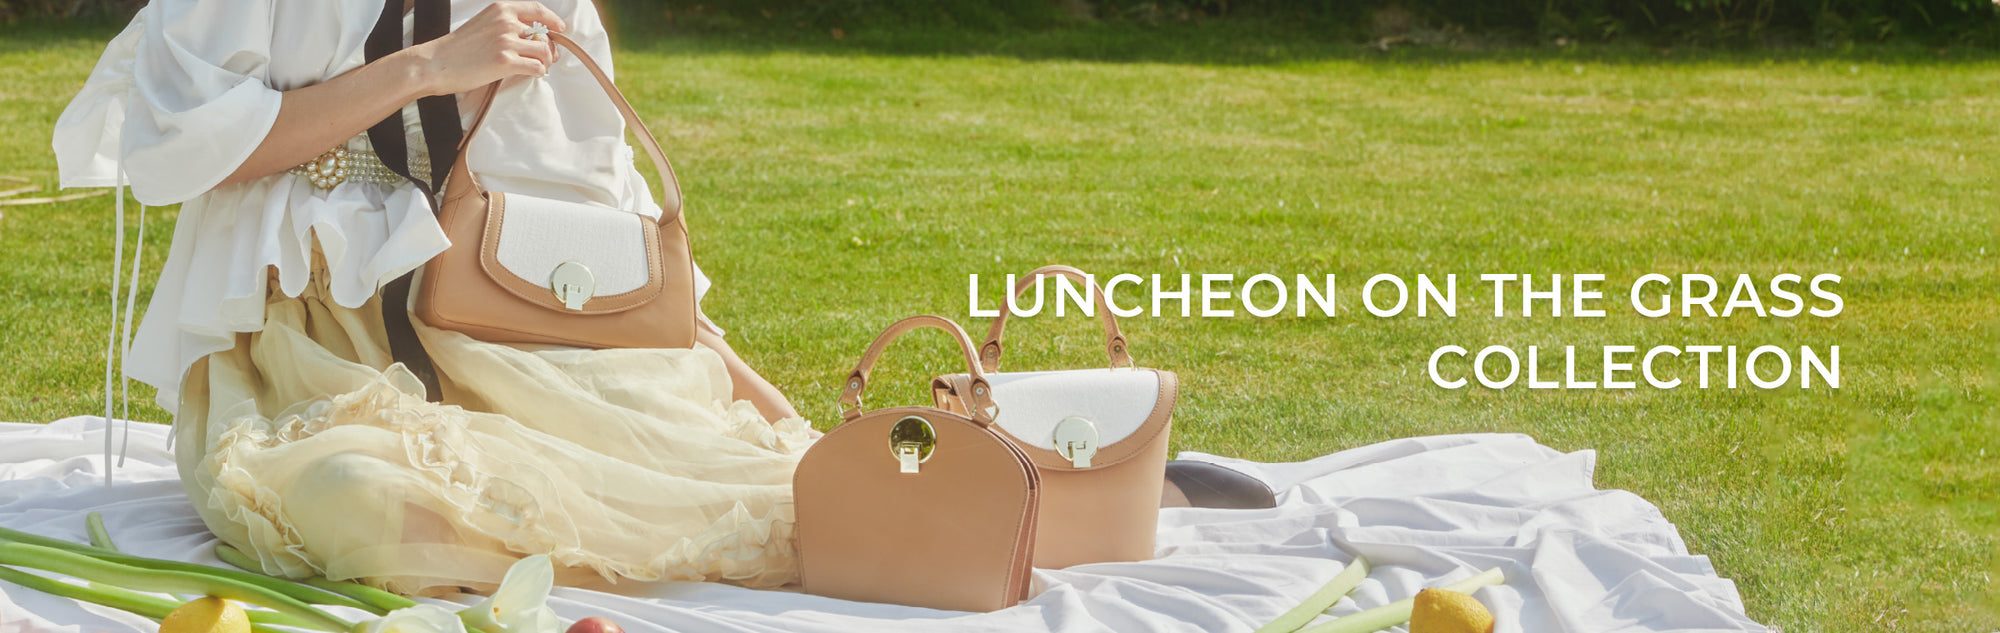 Luncheon on the Grass コレクション